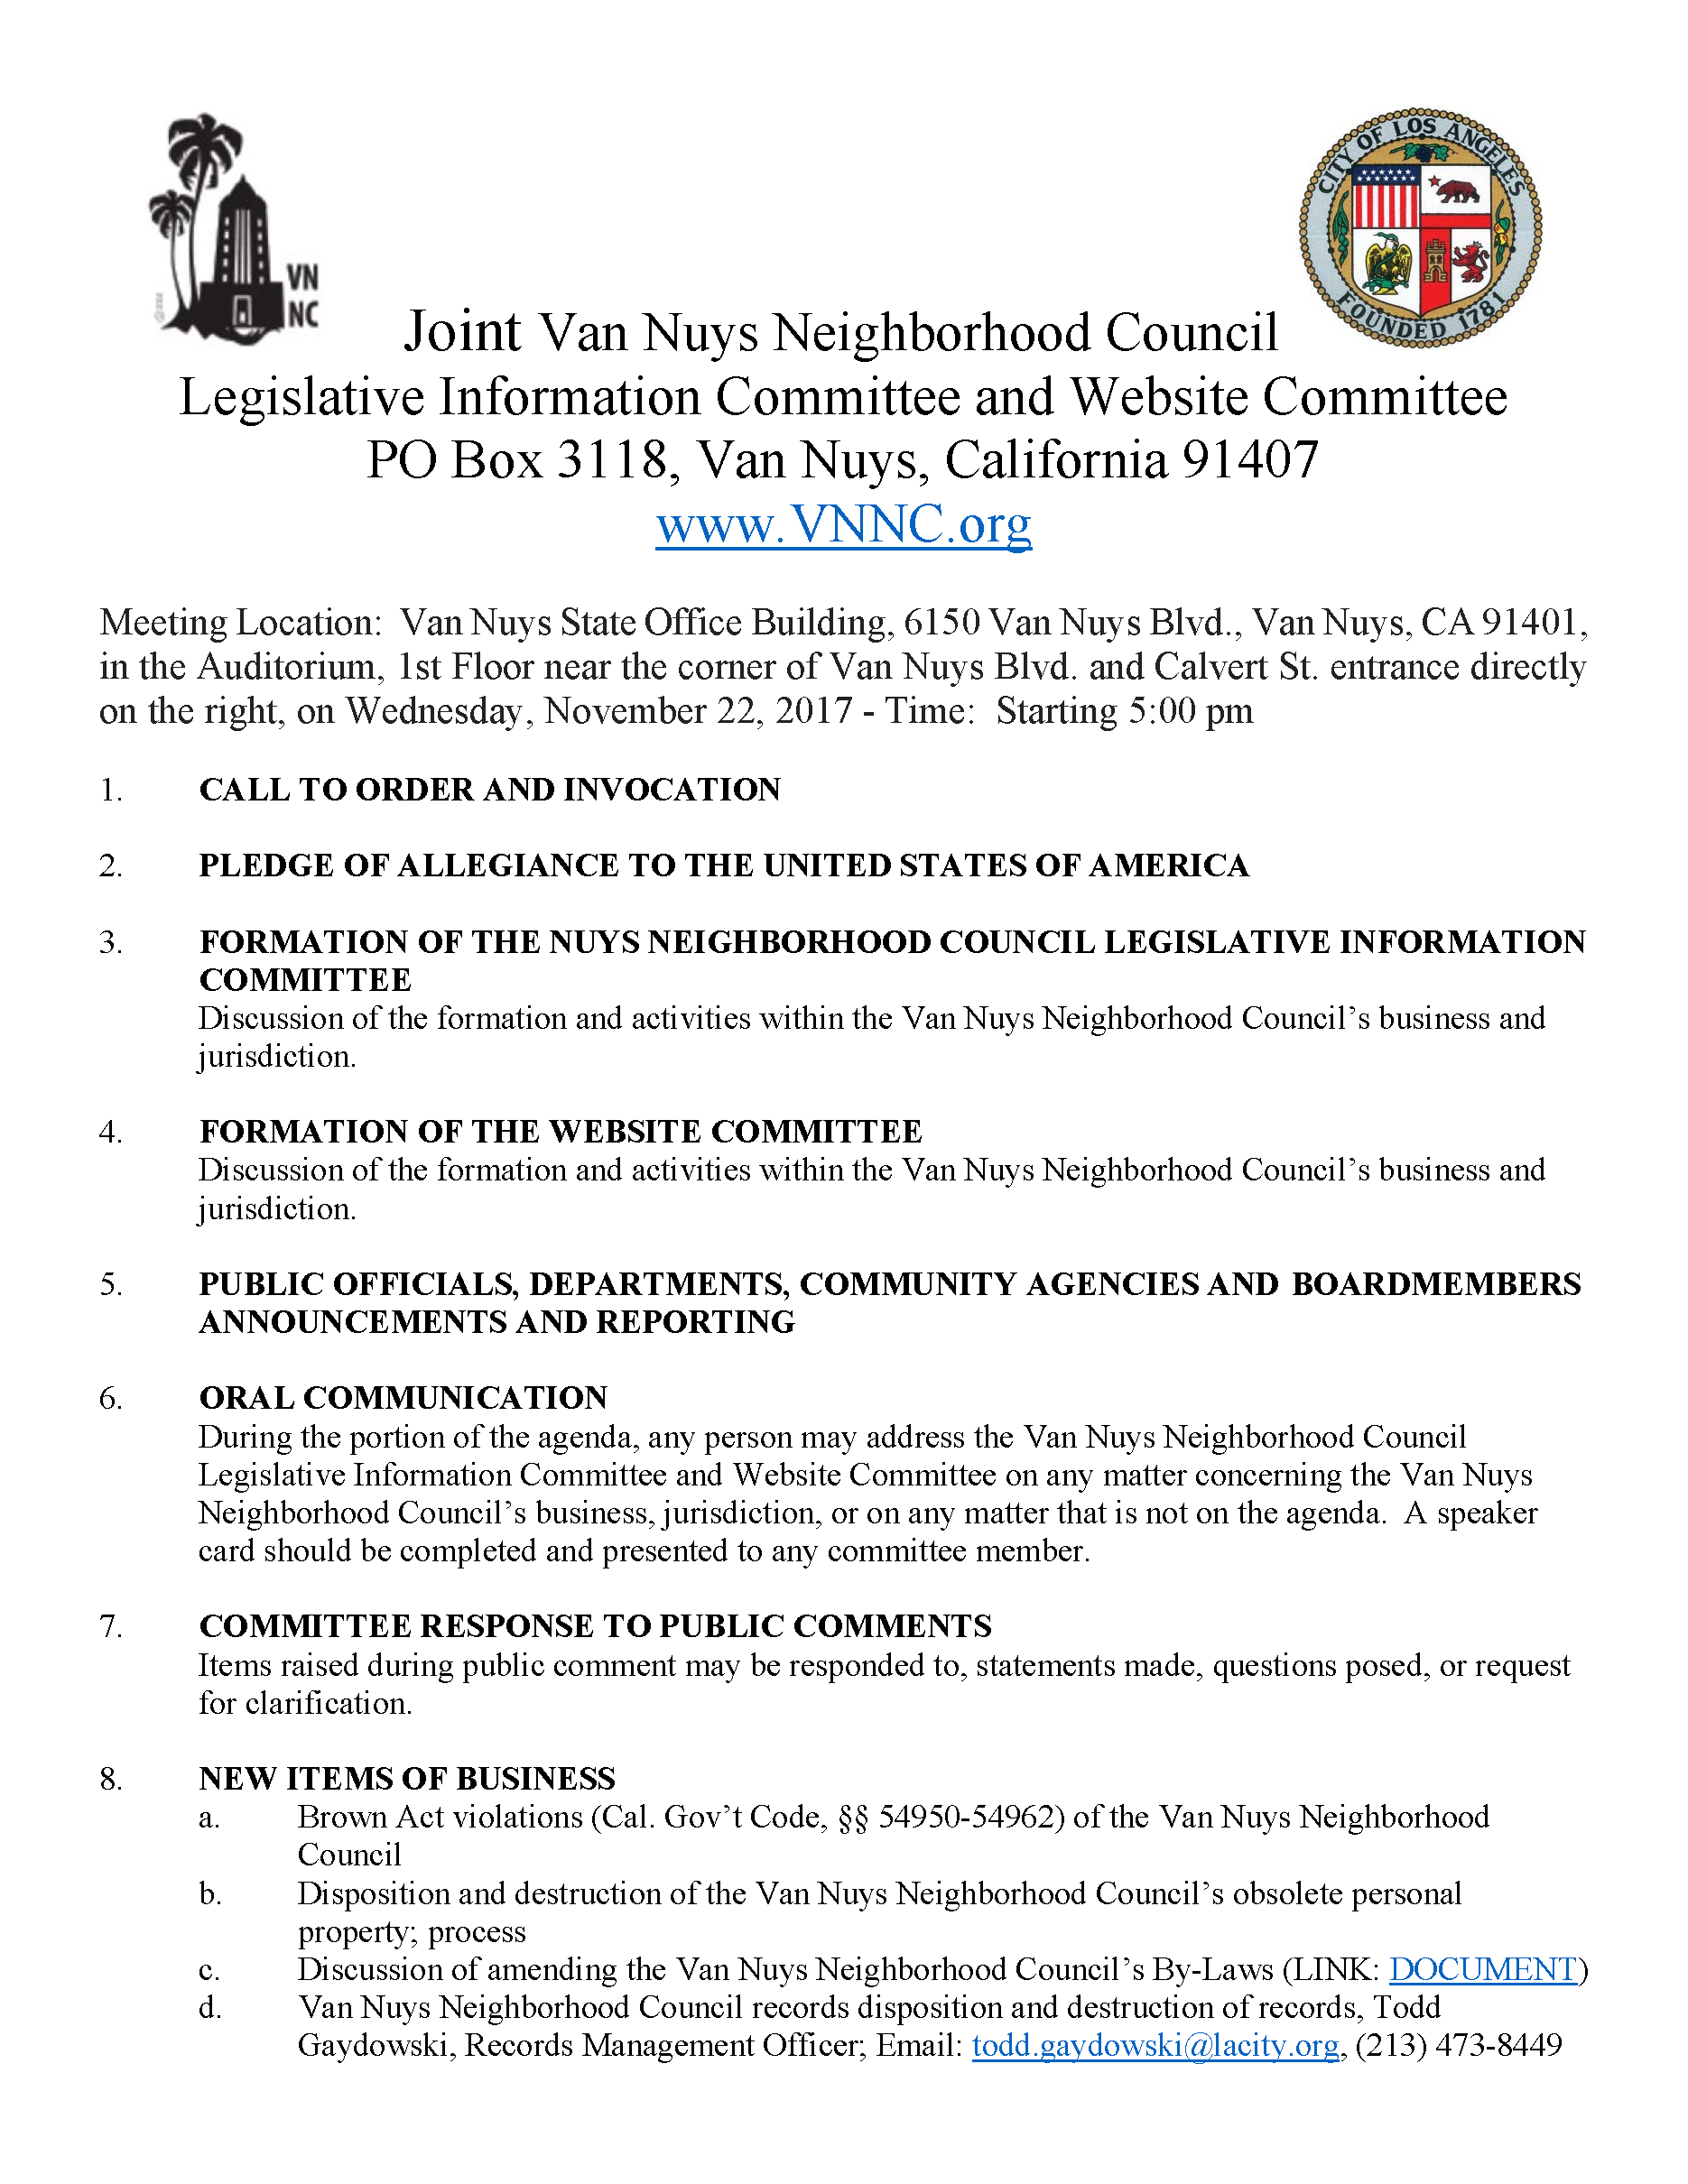 Joint van nuys neighborhood council legislative information joint van nuys neighborhood council legislative information committee and website committee reheart Images